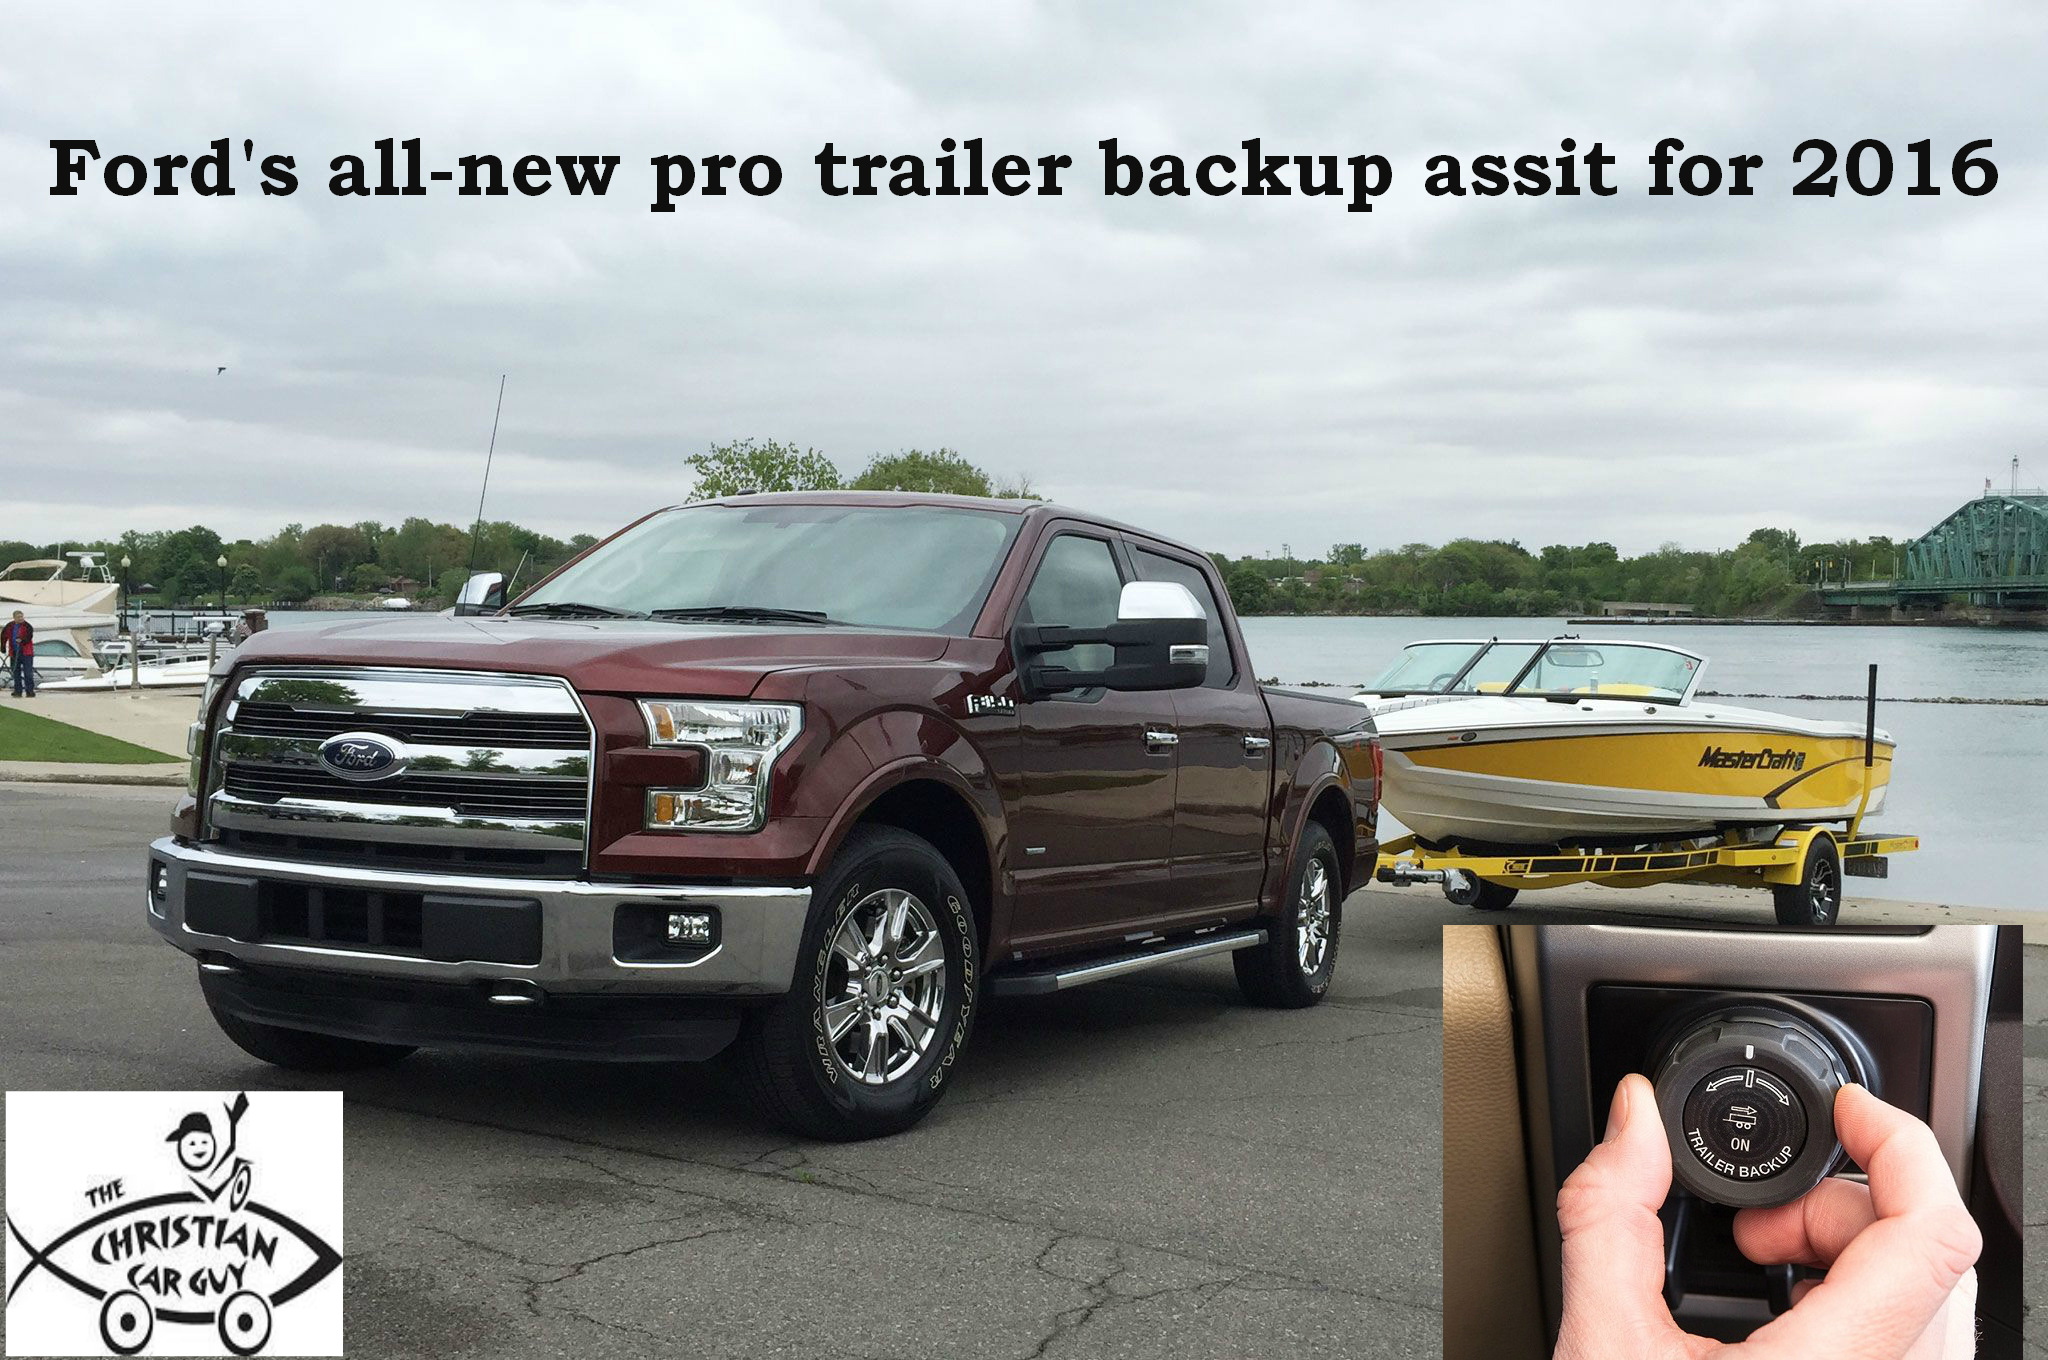 Ford's Better Backup Idea 2016